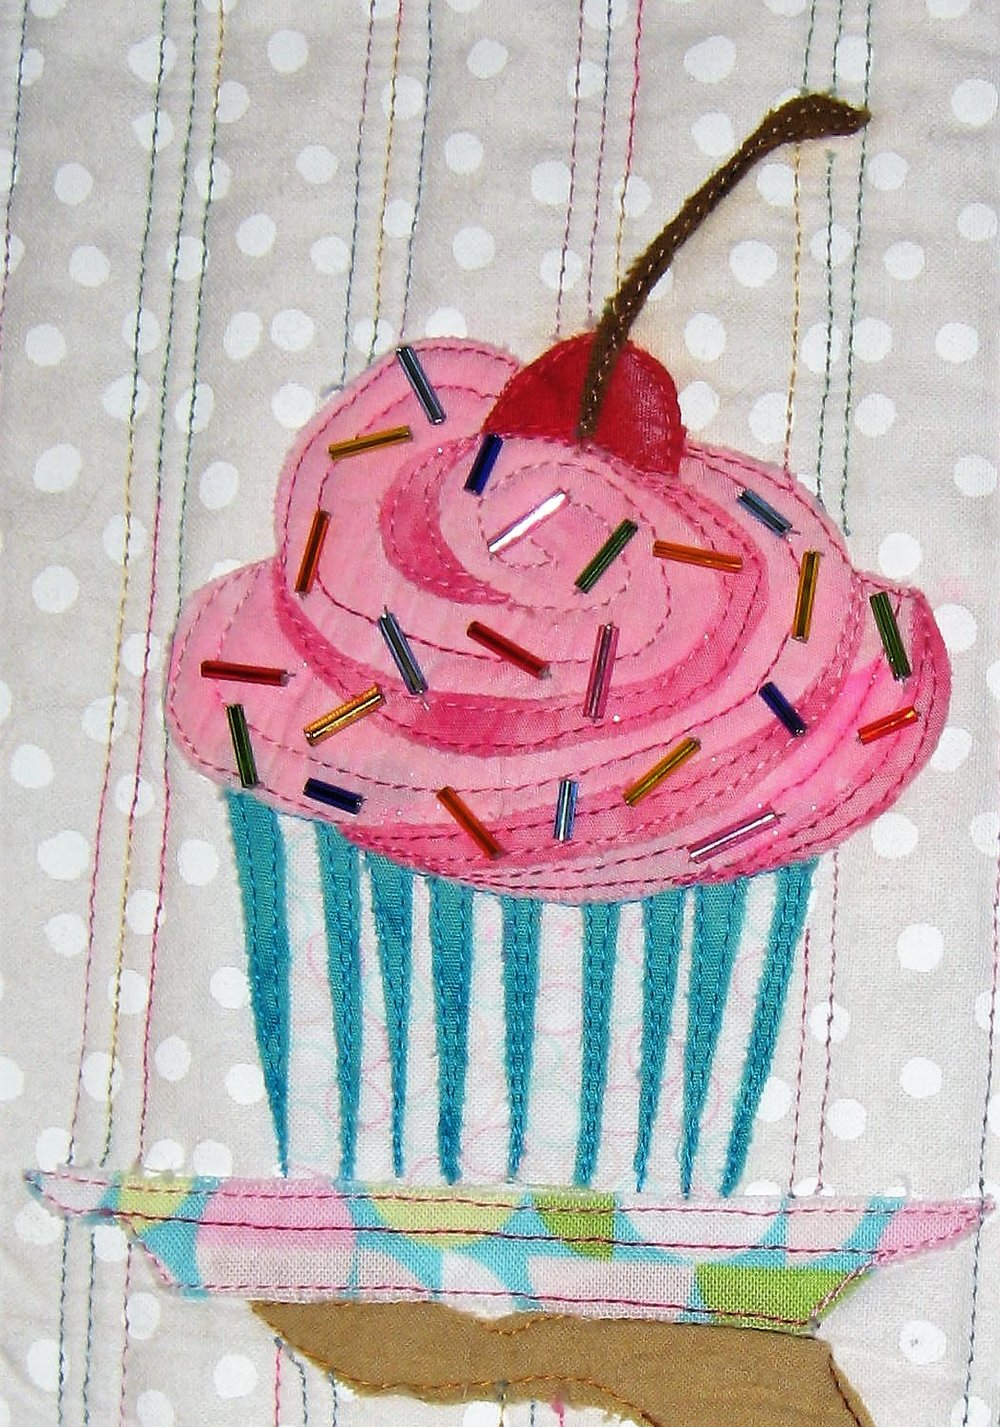 The cupcake has lots of detail and bugle beans sewn to it to represent sprinkles!!